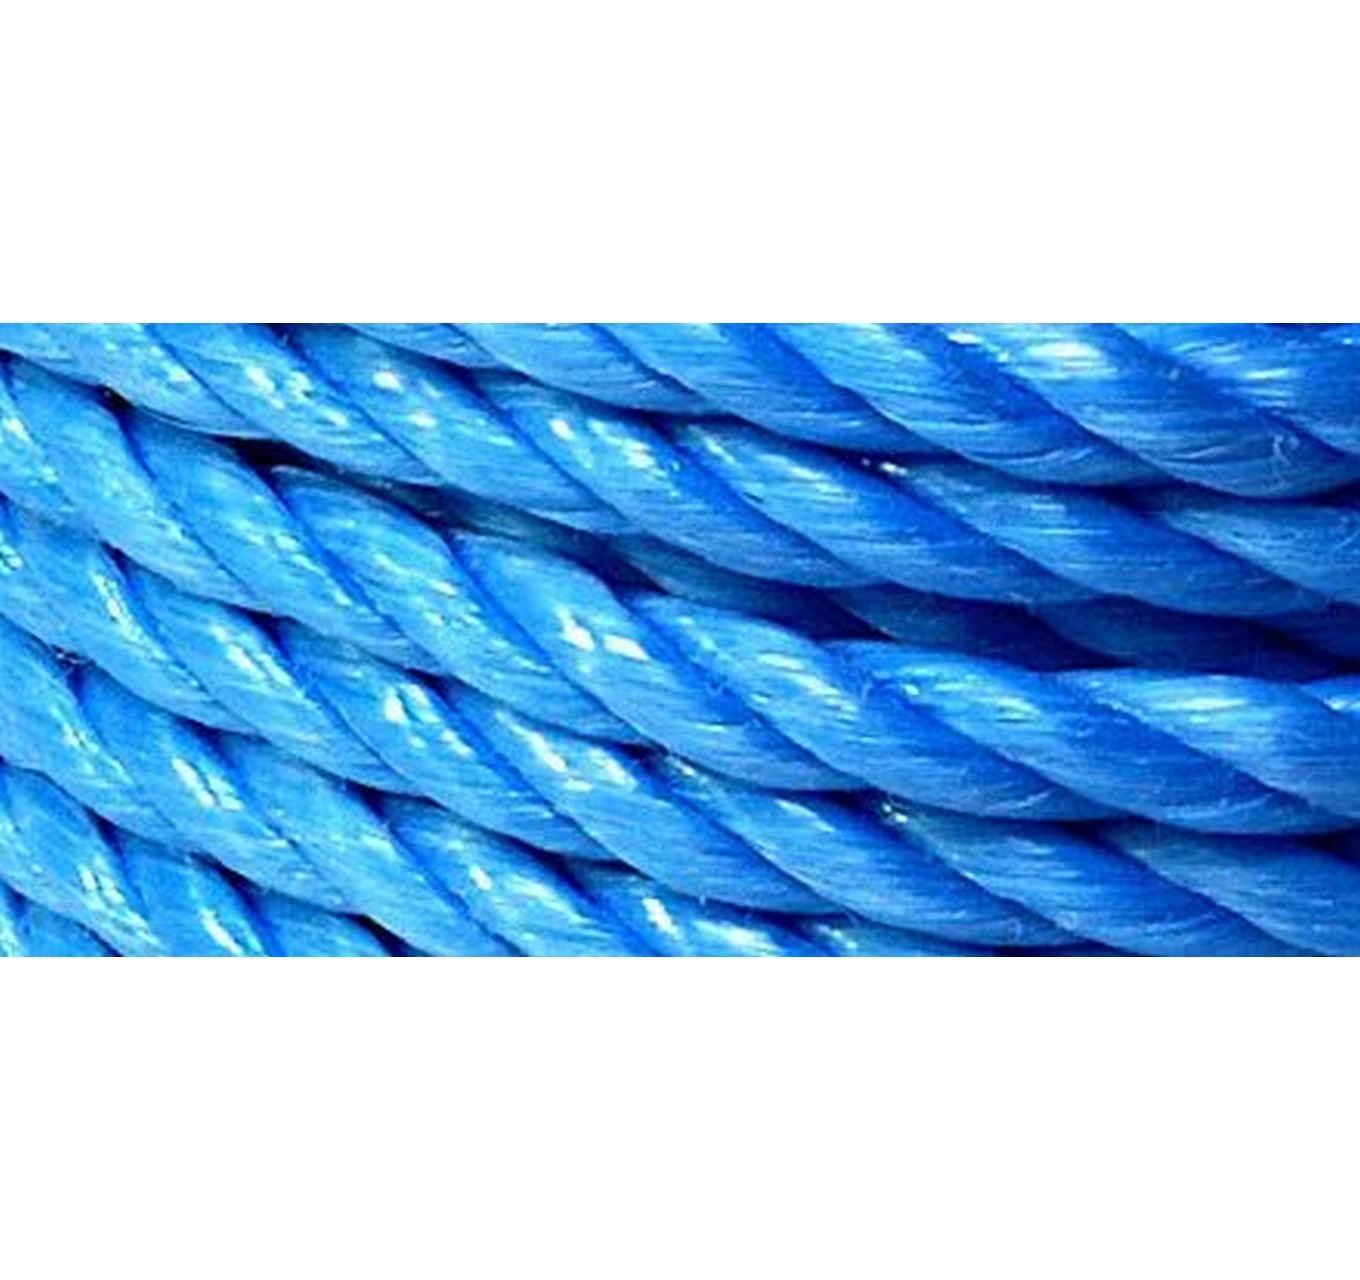 Blue Poly Rope 6mm x 15m